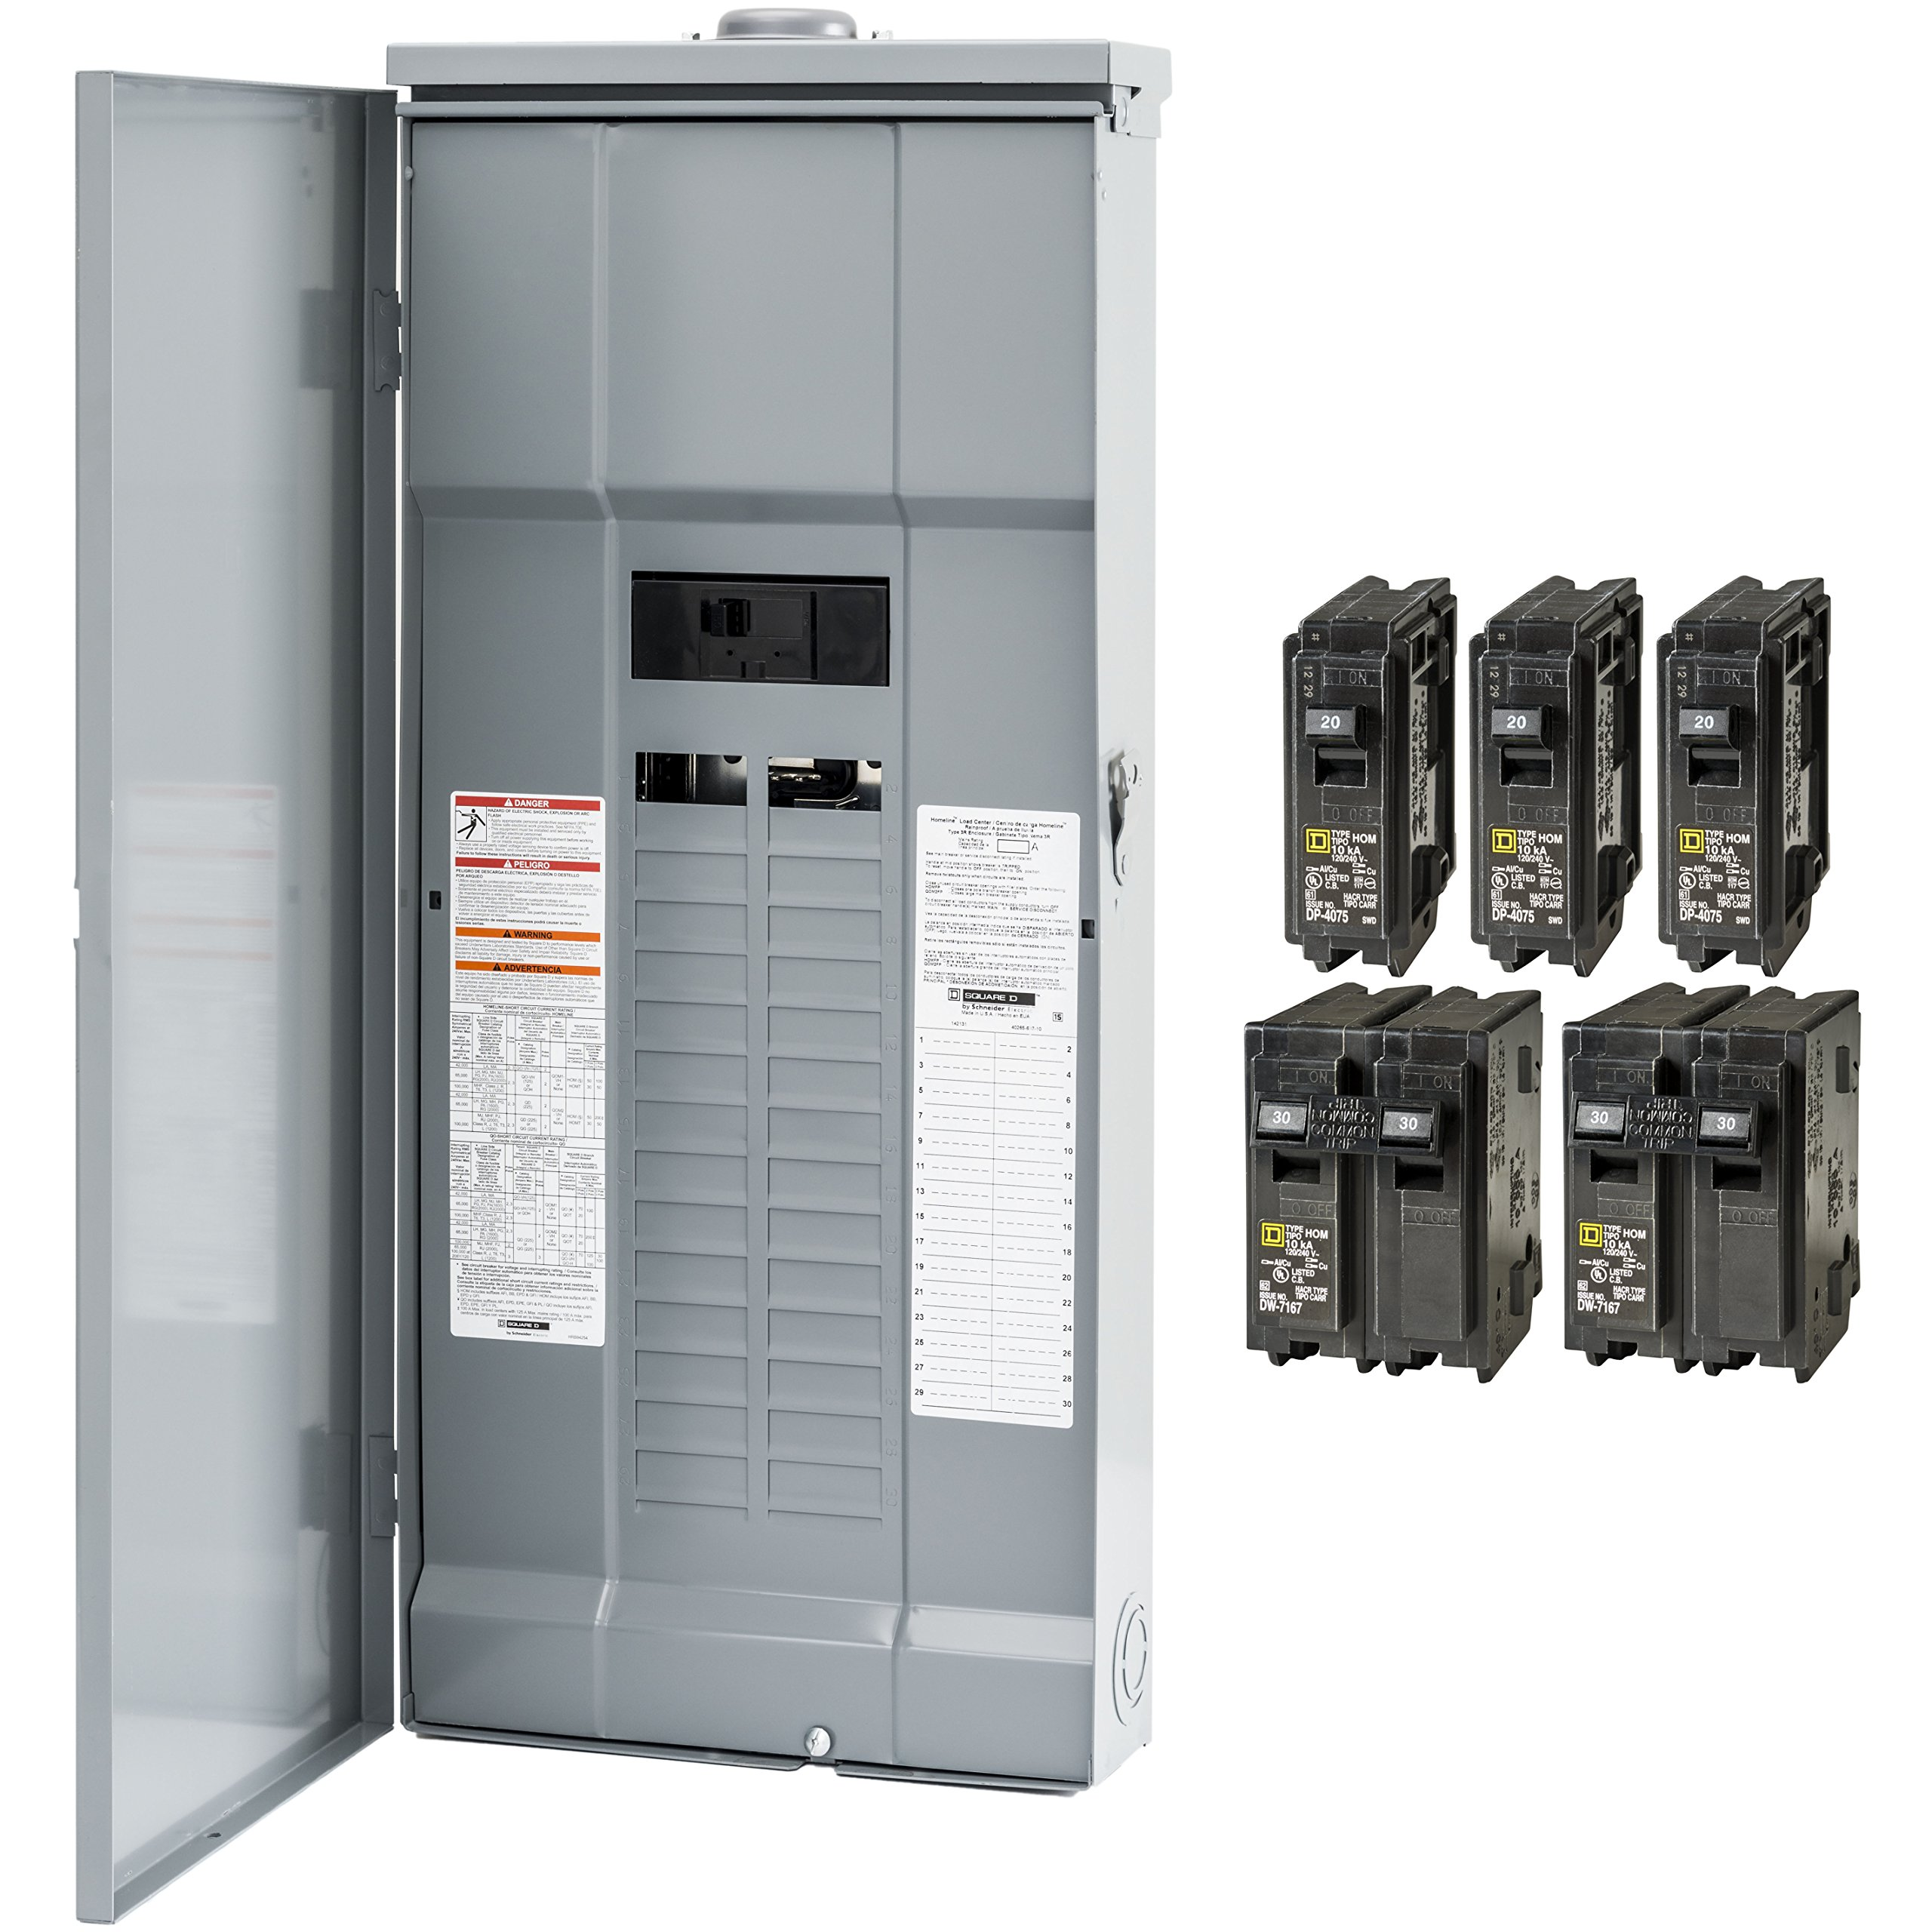 Square D by Schneider Electric HOM3060M200PRBVP Homeline 200 Amp 30-Space 60-Circuit Outdoor Main Breaker Load Center - Value Pack (Plug-on Neutral Ready), ,